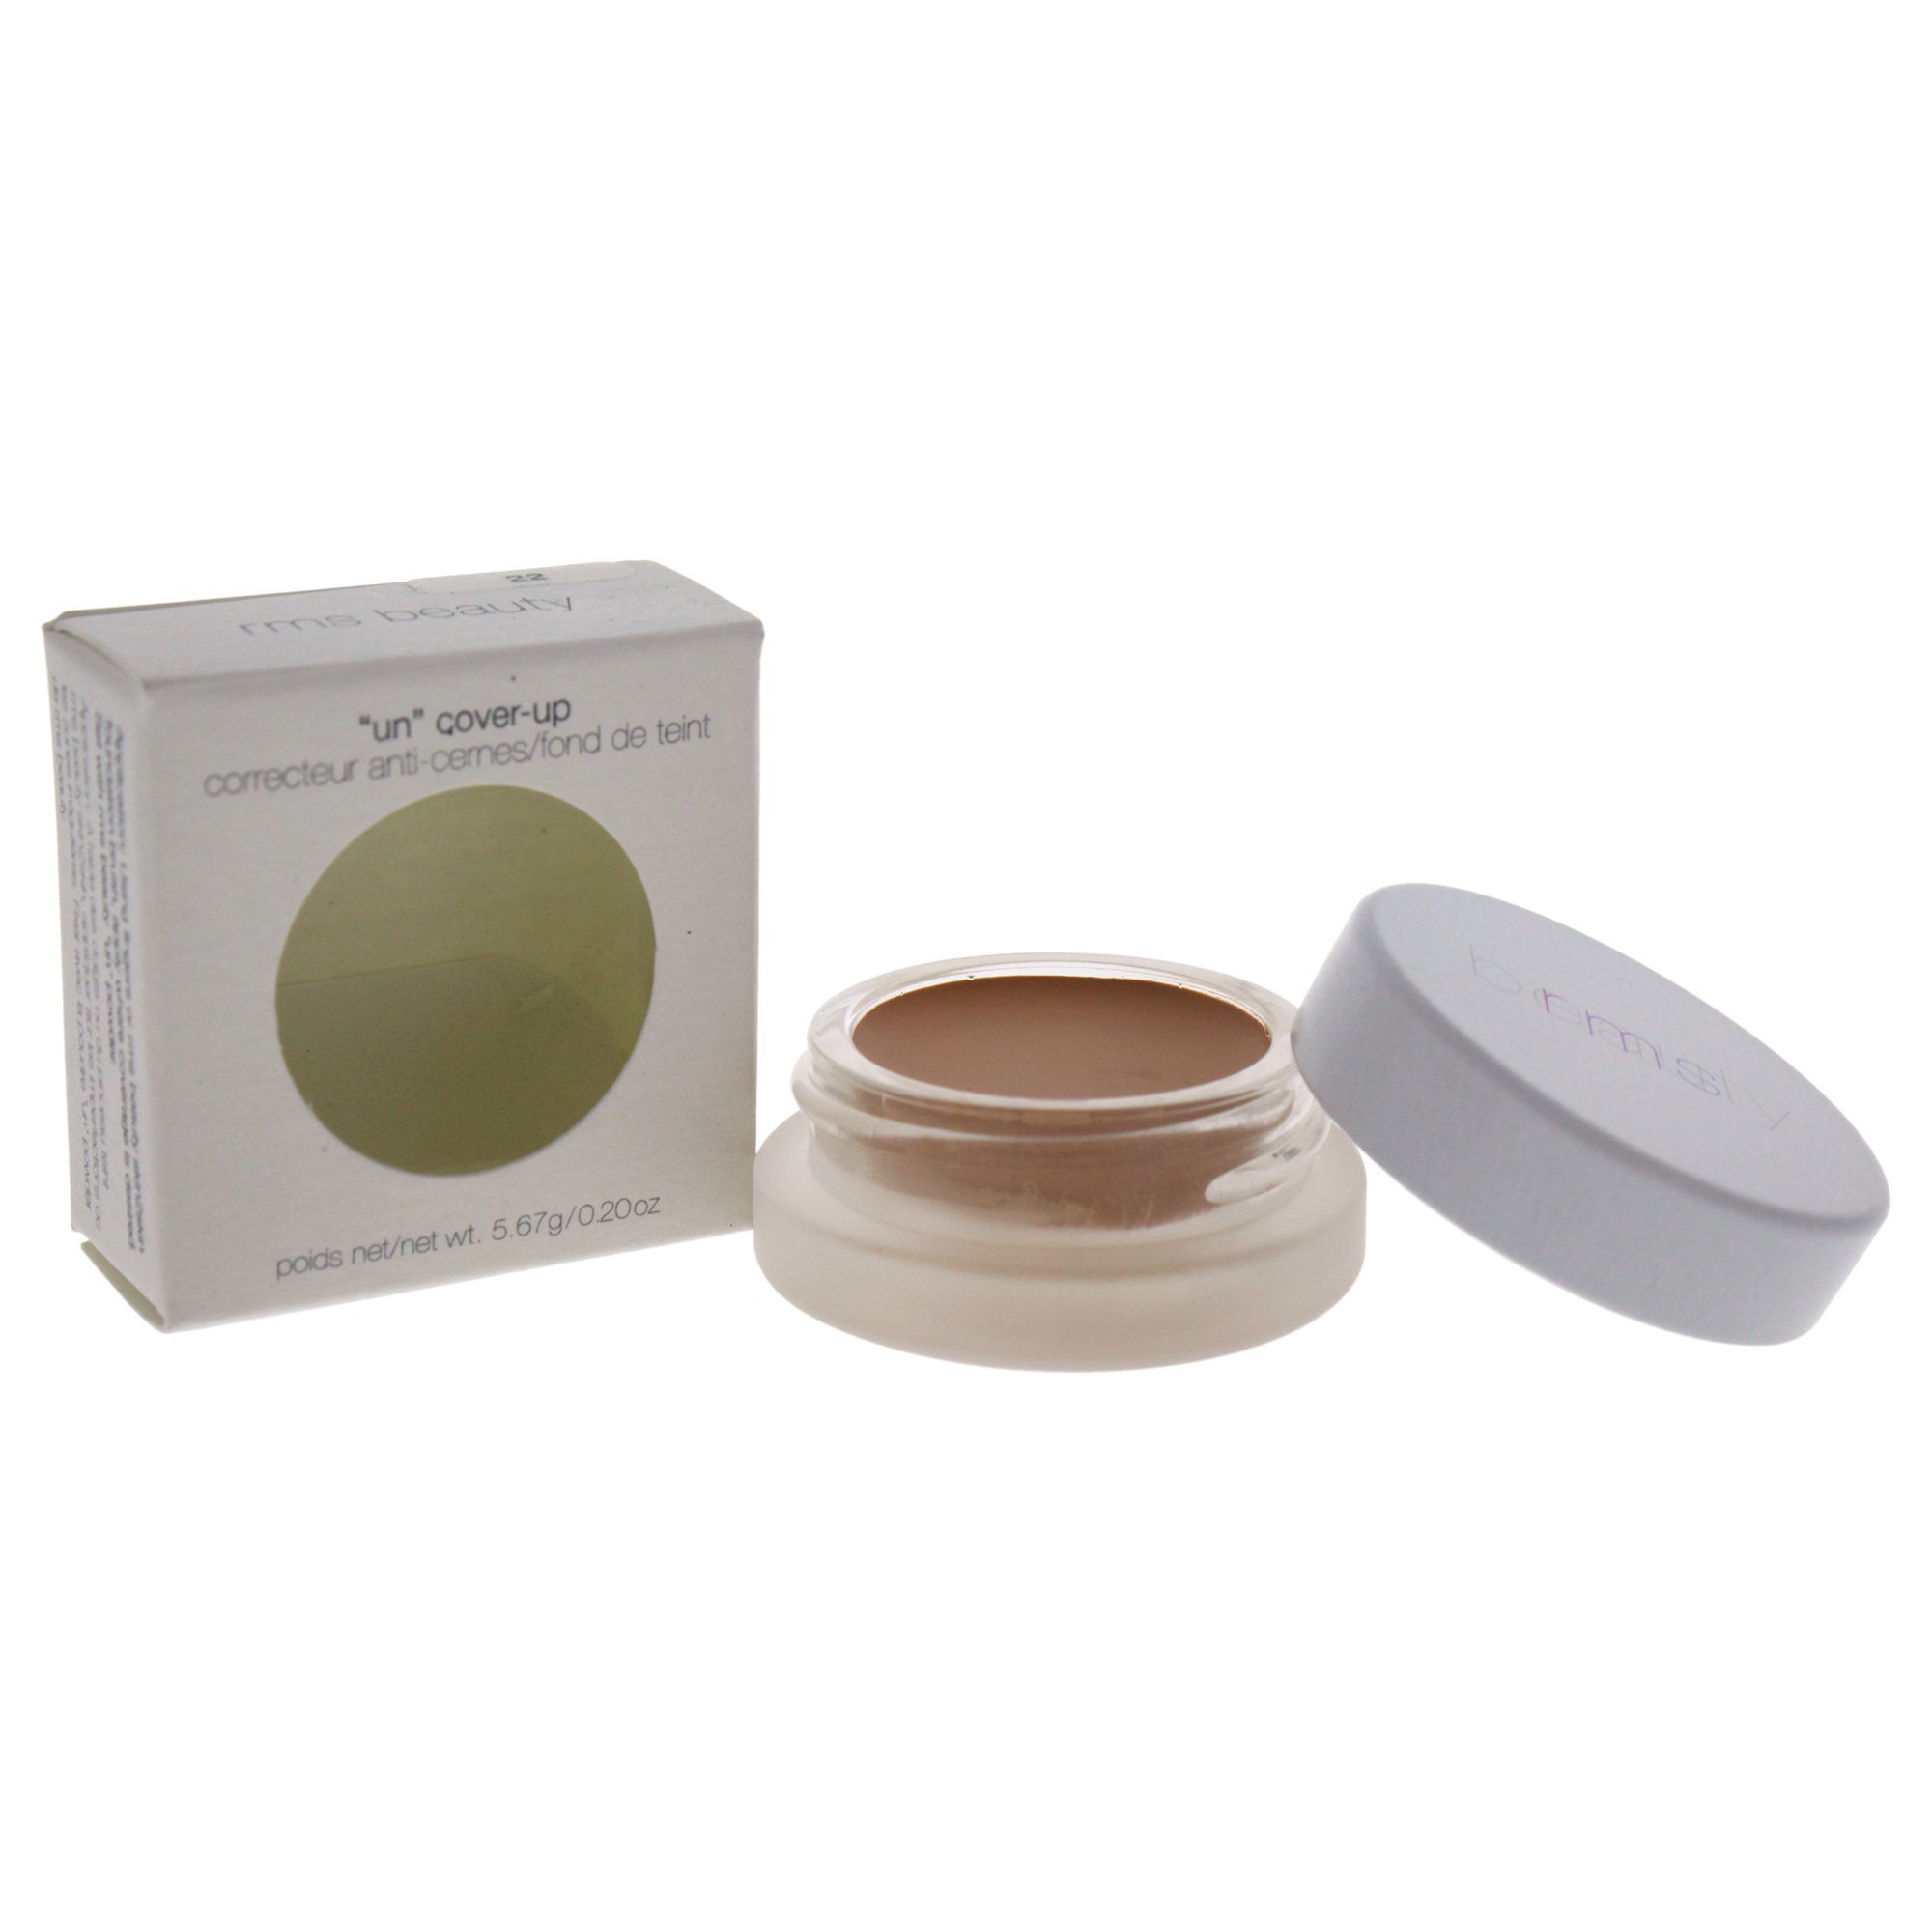 RMS Beauty Un Cover-Up Concealer, No.22 Light Medium, 0.2 Ounce by RMS Beauty